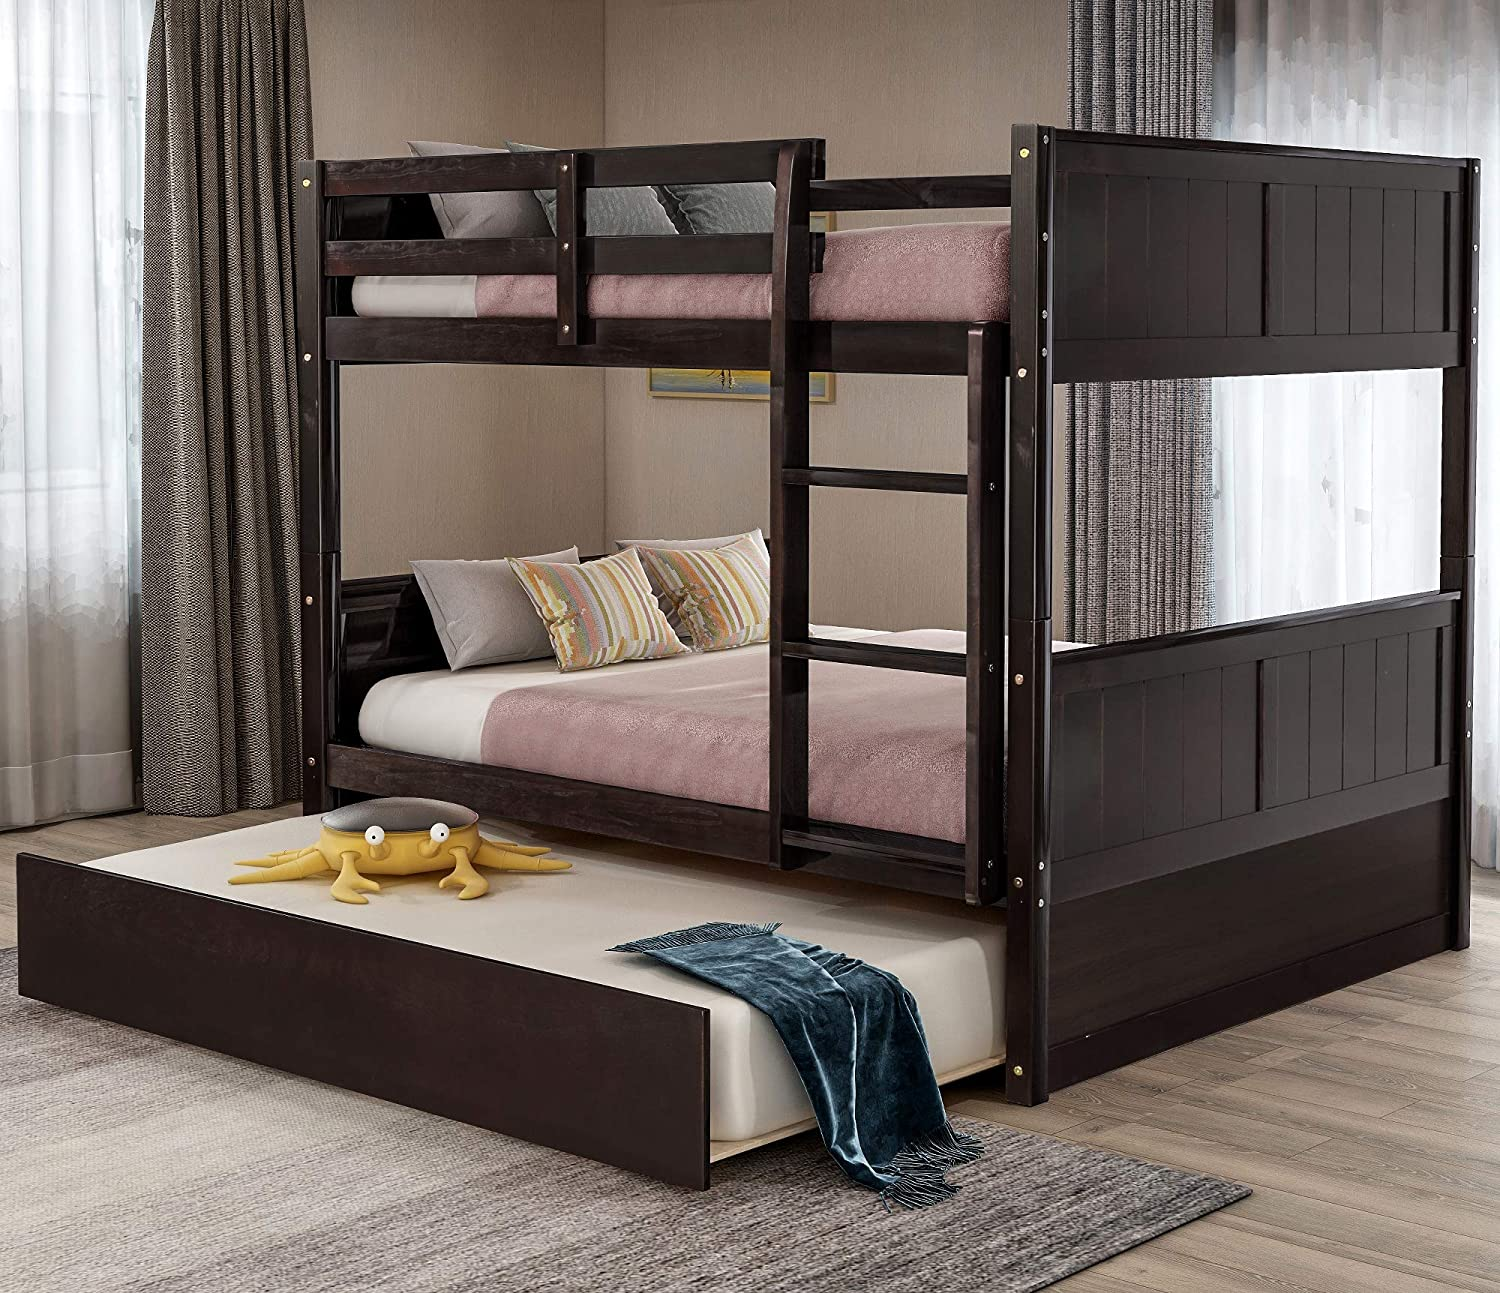 Merax Full Over Full Wood Bunk Bed with Trundle Bed and Removal Ladder and Safety Rail, Can be Divided into 2, Dark Espresso